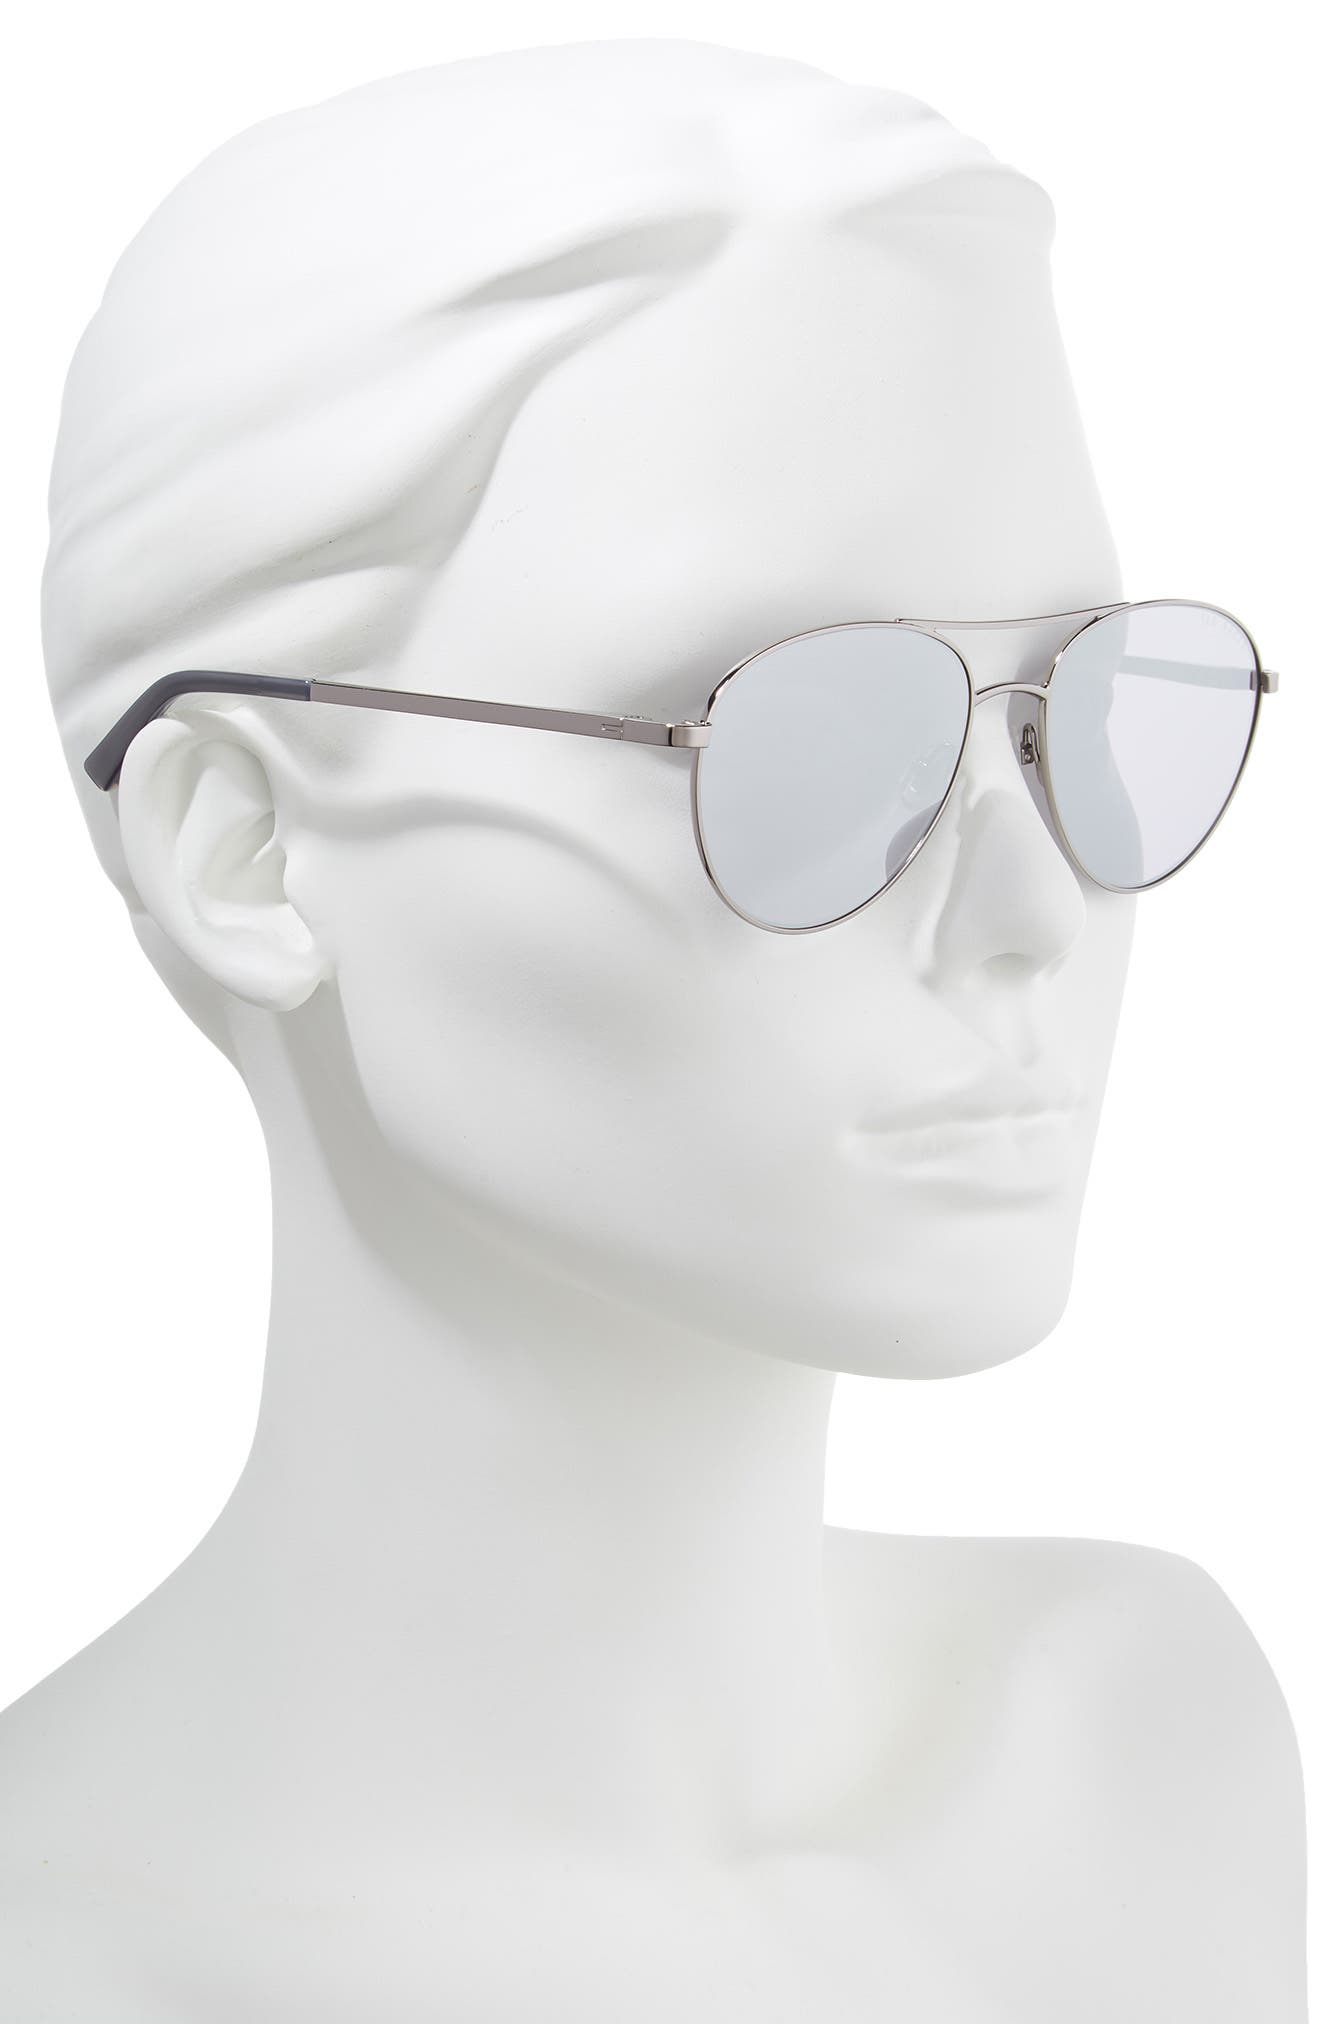 TED BAKER LONDON,                             55mm Aviator Sunglasses,                             Alternate thumbnail 2, color,                             SILVER